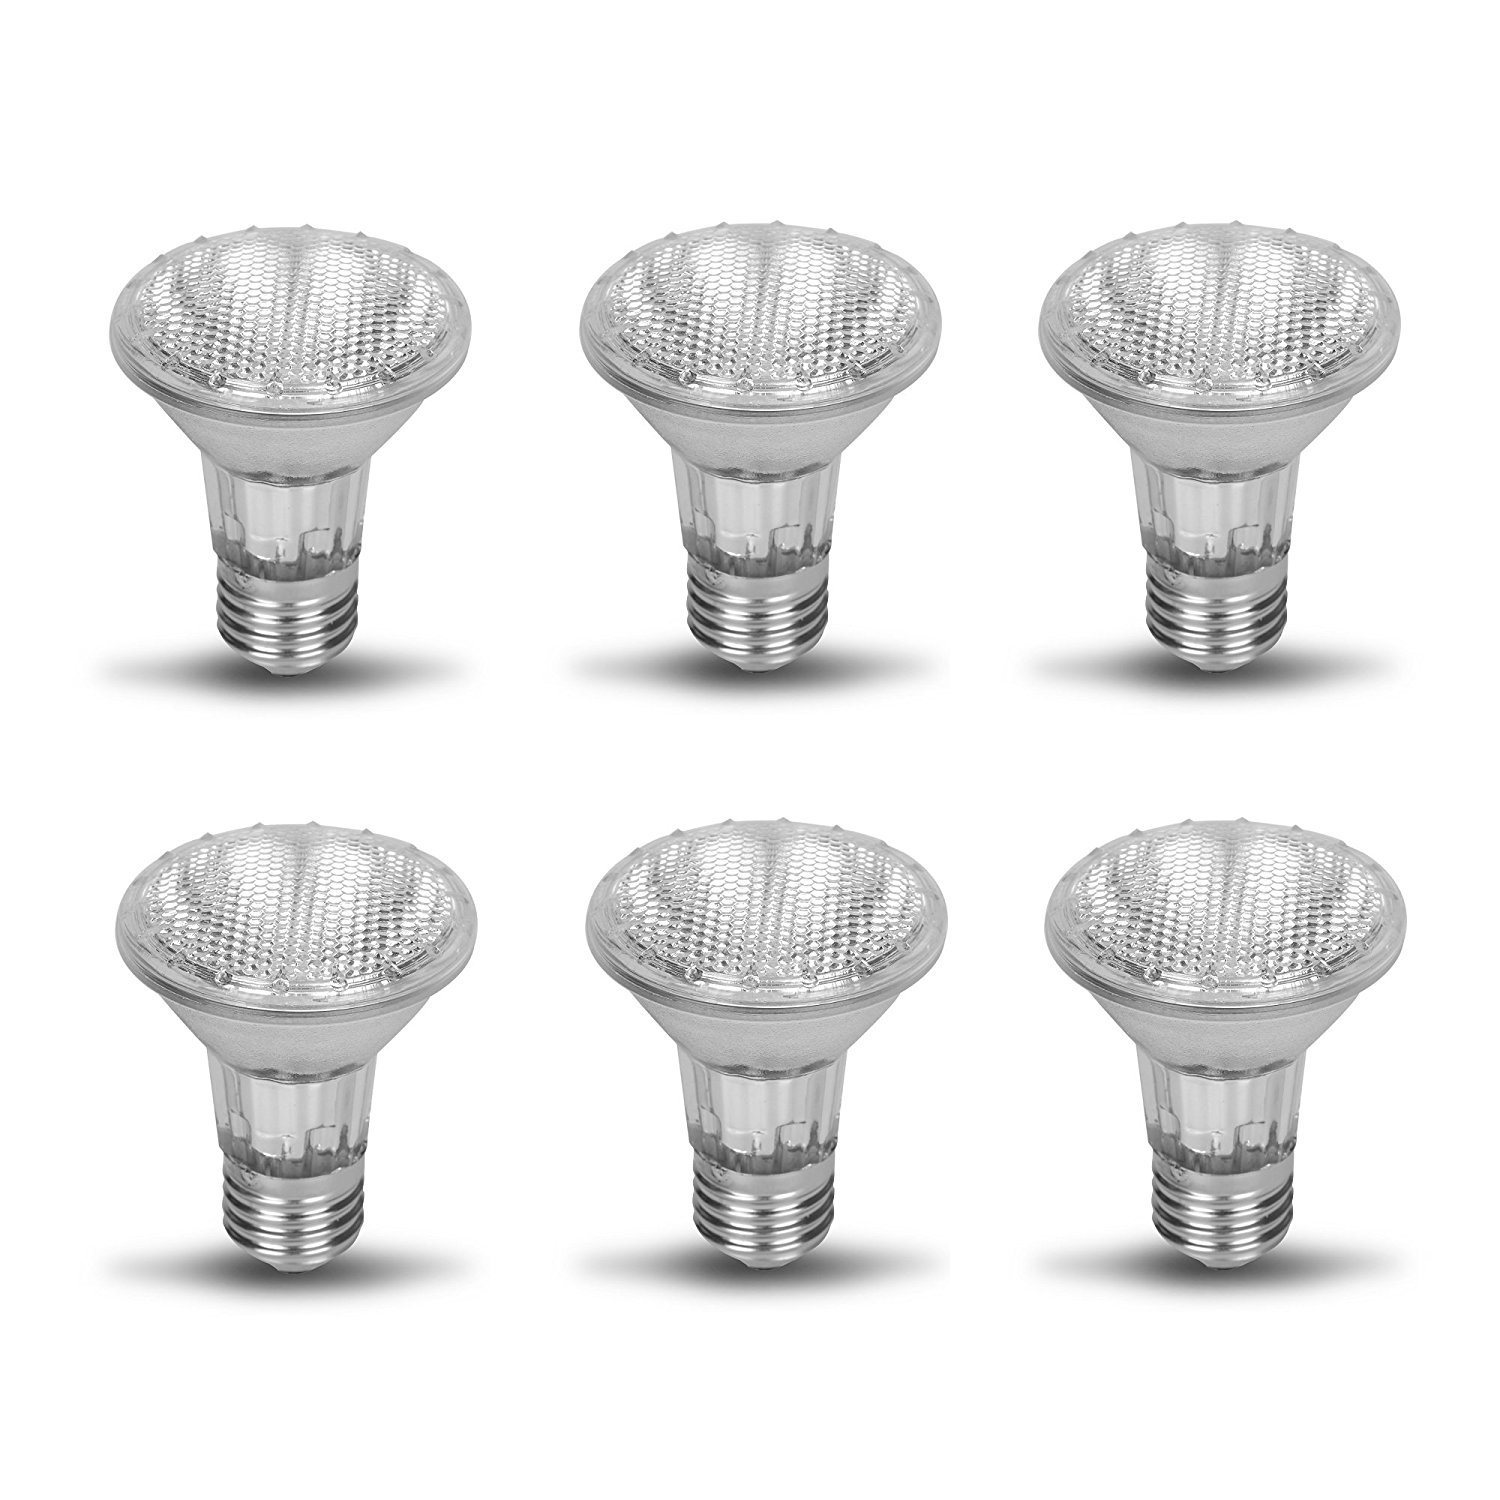 Par 20 6 Pack FL25 35PAR20/FL 35 Watt Halogen Spot Light Bulb Replacement 120V 130V Base Flood Beam Lighting Range Hood Oven PAR20 Reflector Excel Bulbs DL Kitchen Bathroom Ceiling Can Lamp 35W E26 6P